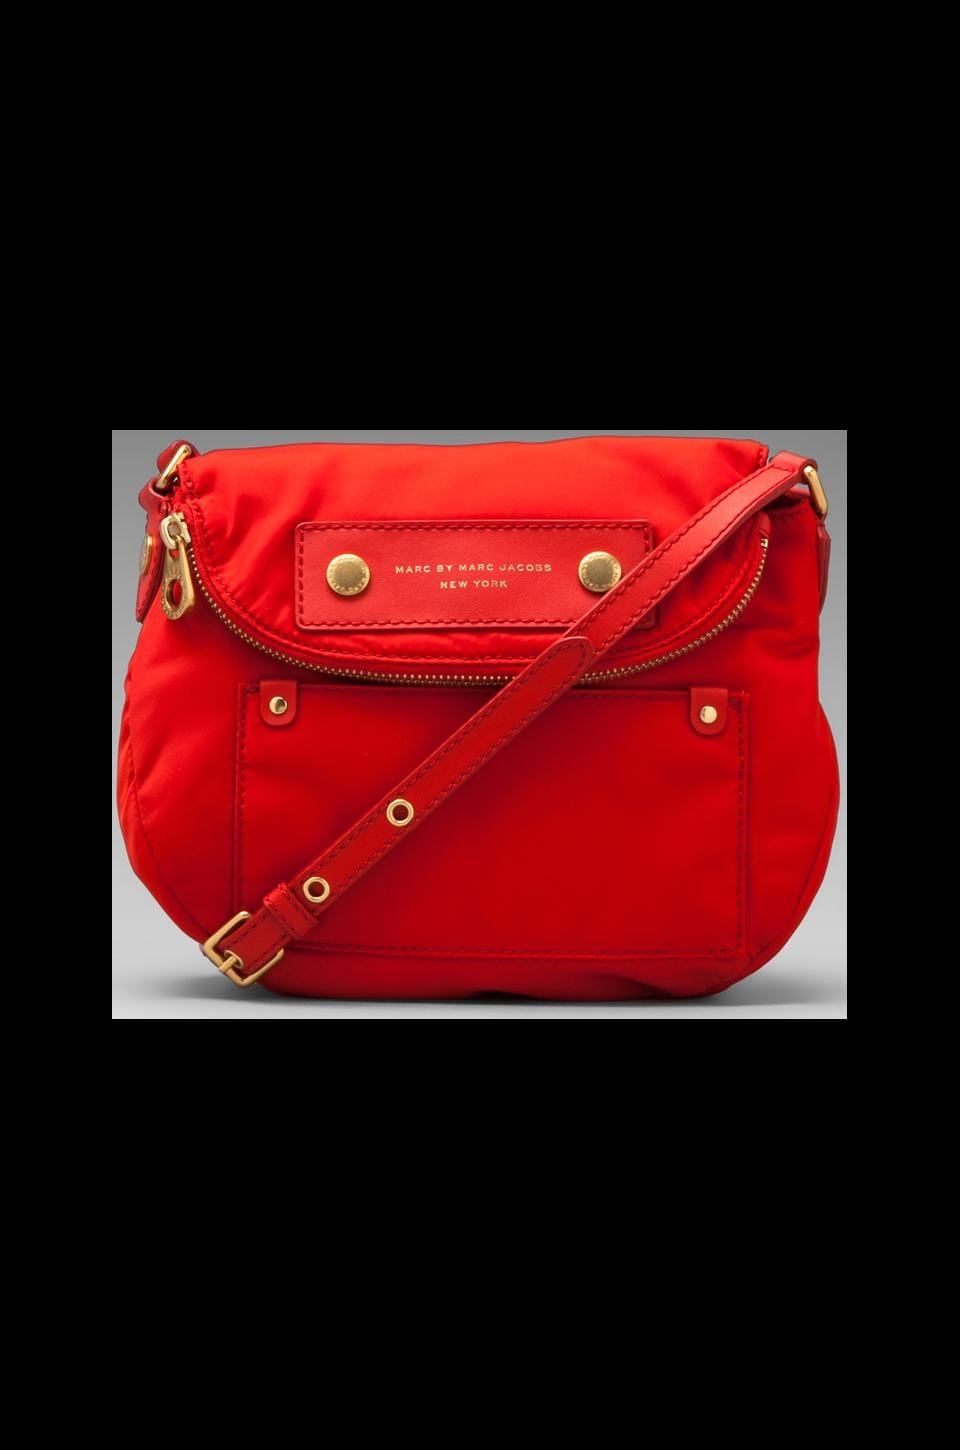 Marc by Marc Jacobs Preppy Nylon Mini Natasha Crossbody in Blaze Red